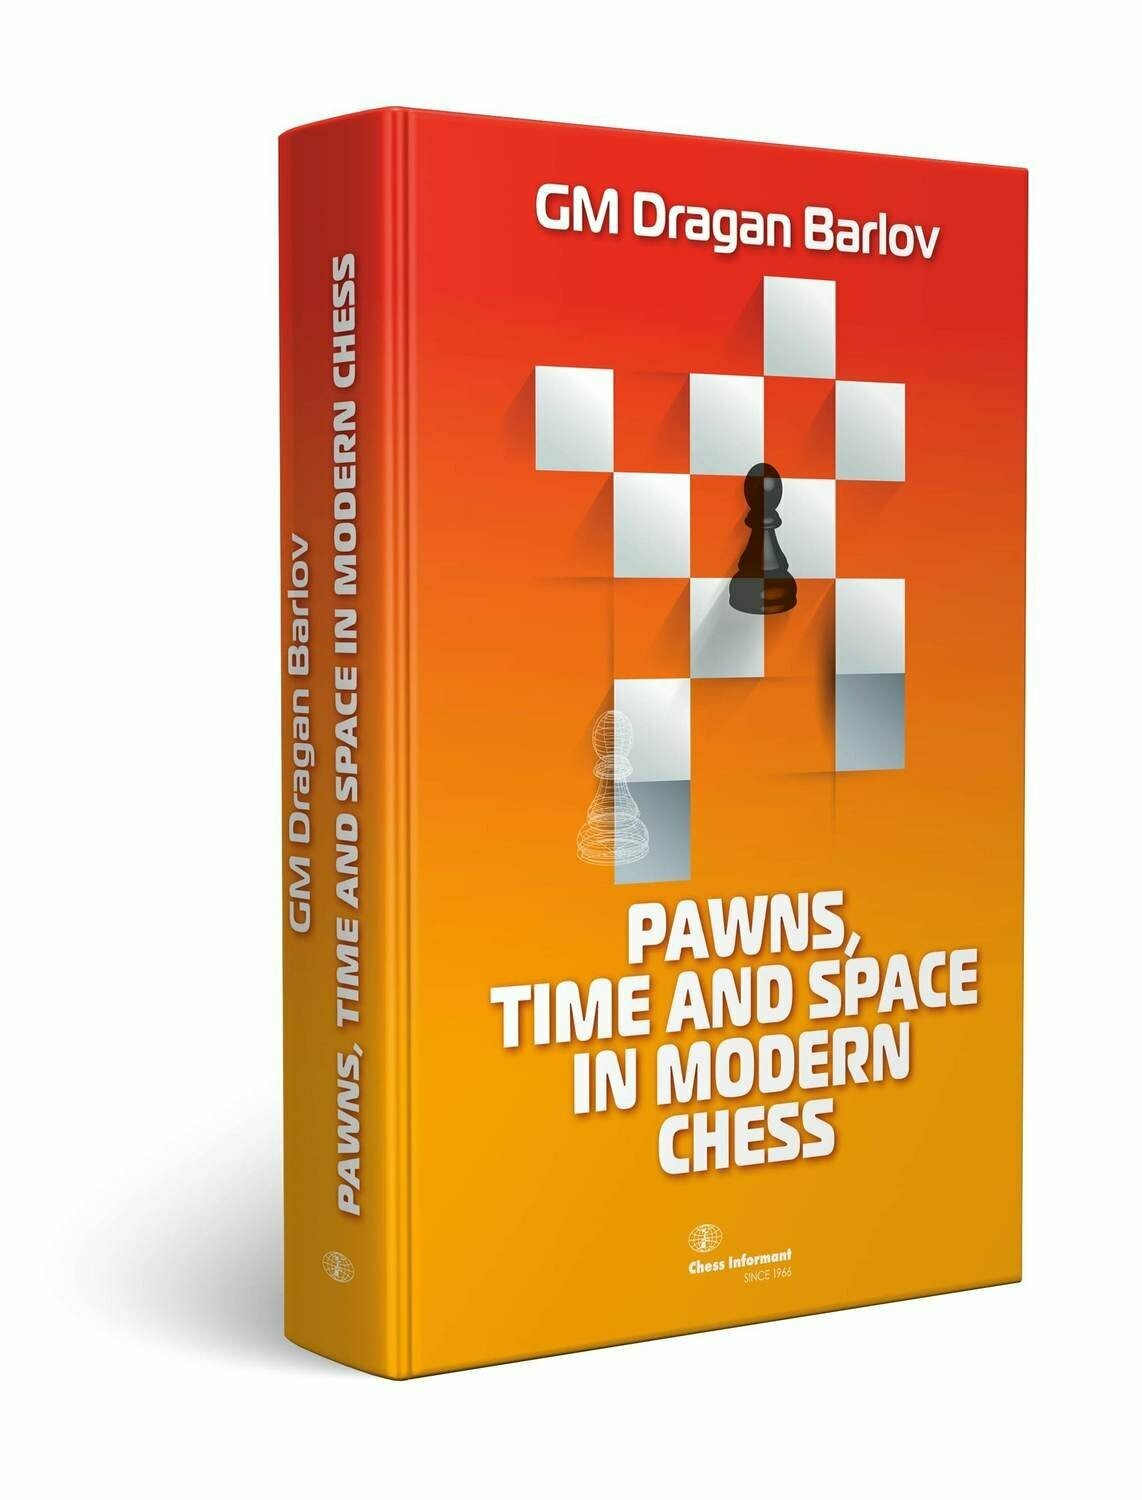 Pawns, Time and Space in Modern Chess - ***DAMAGED***